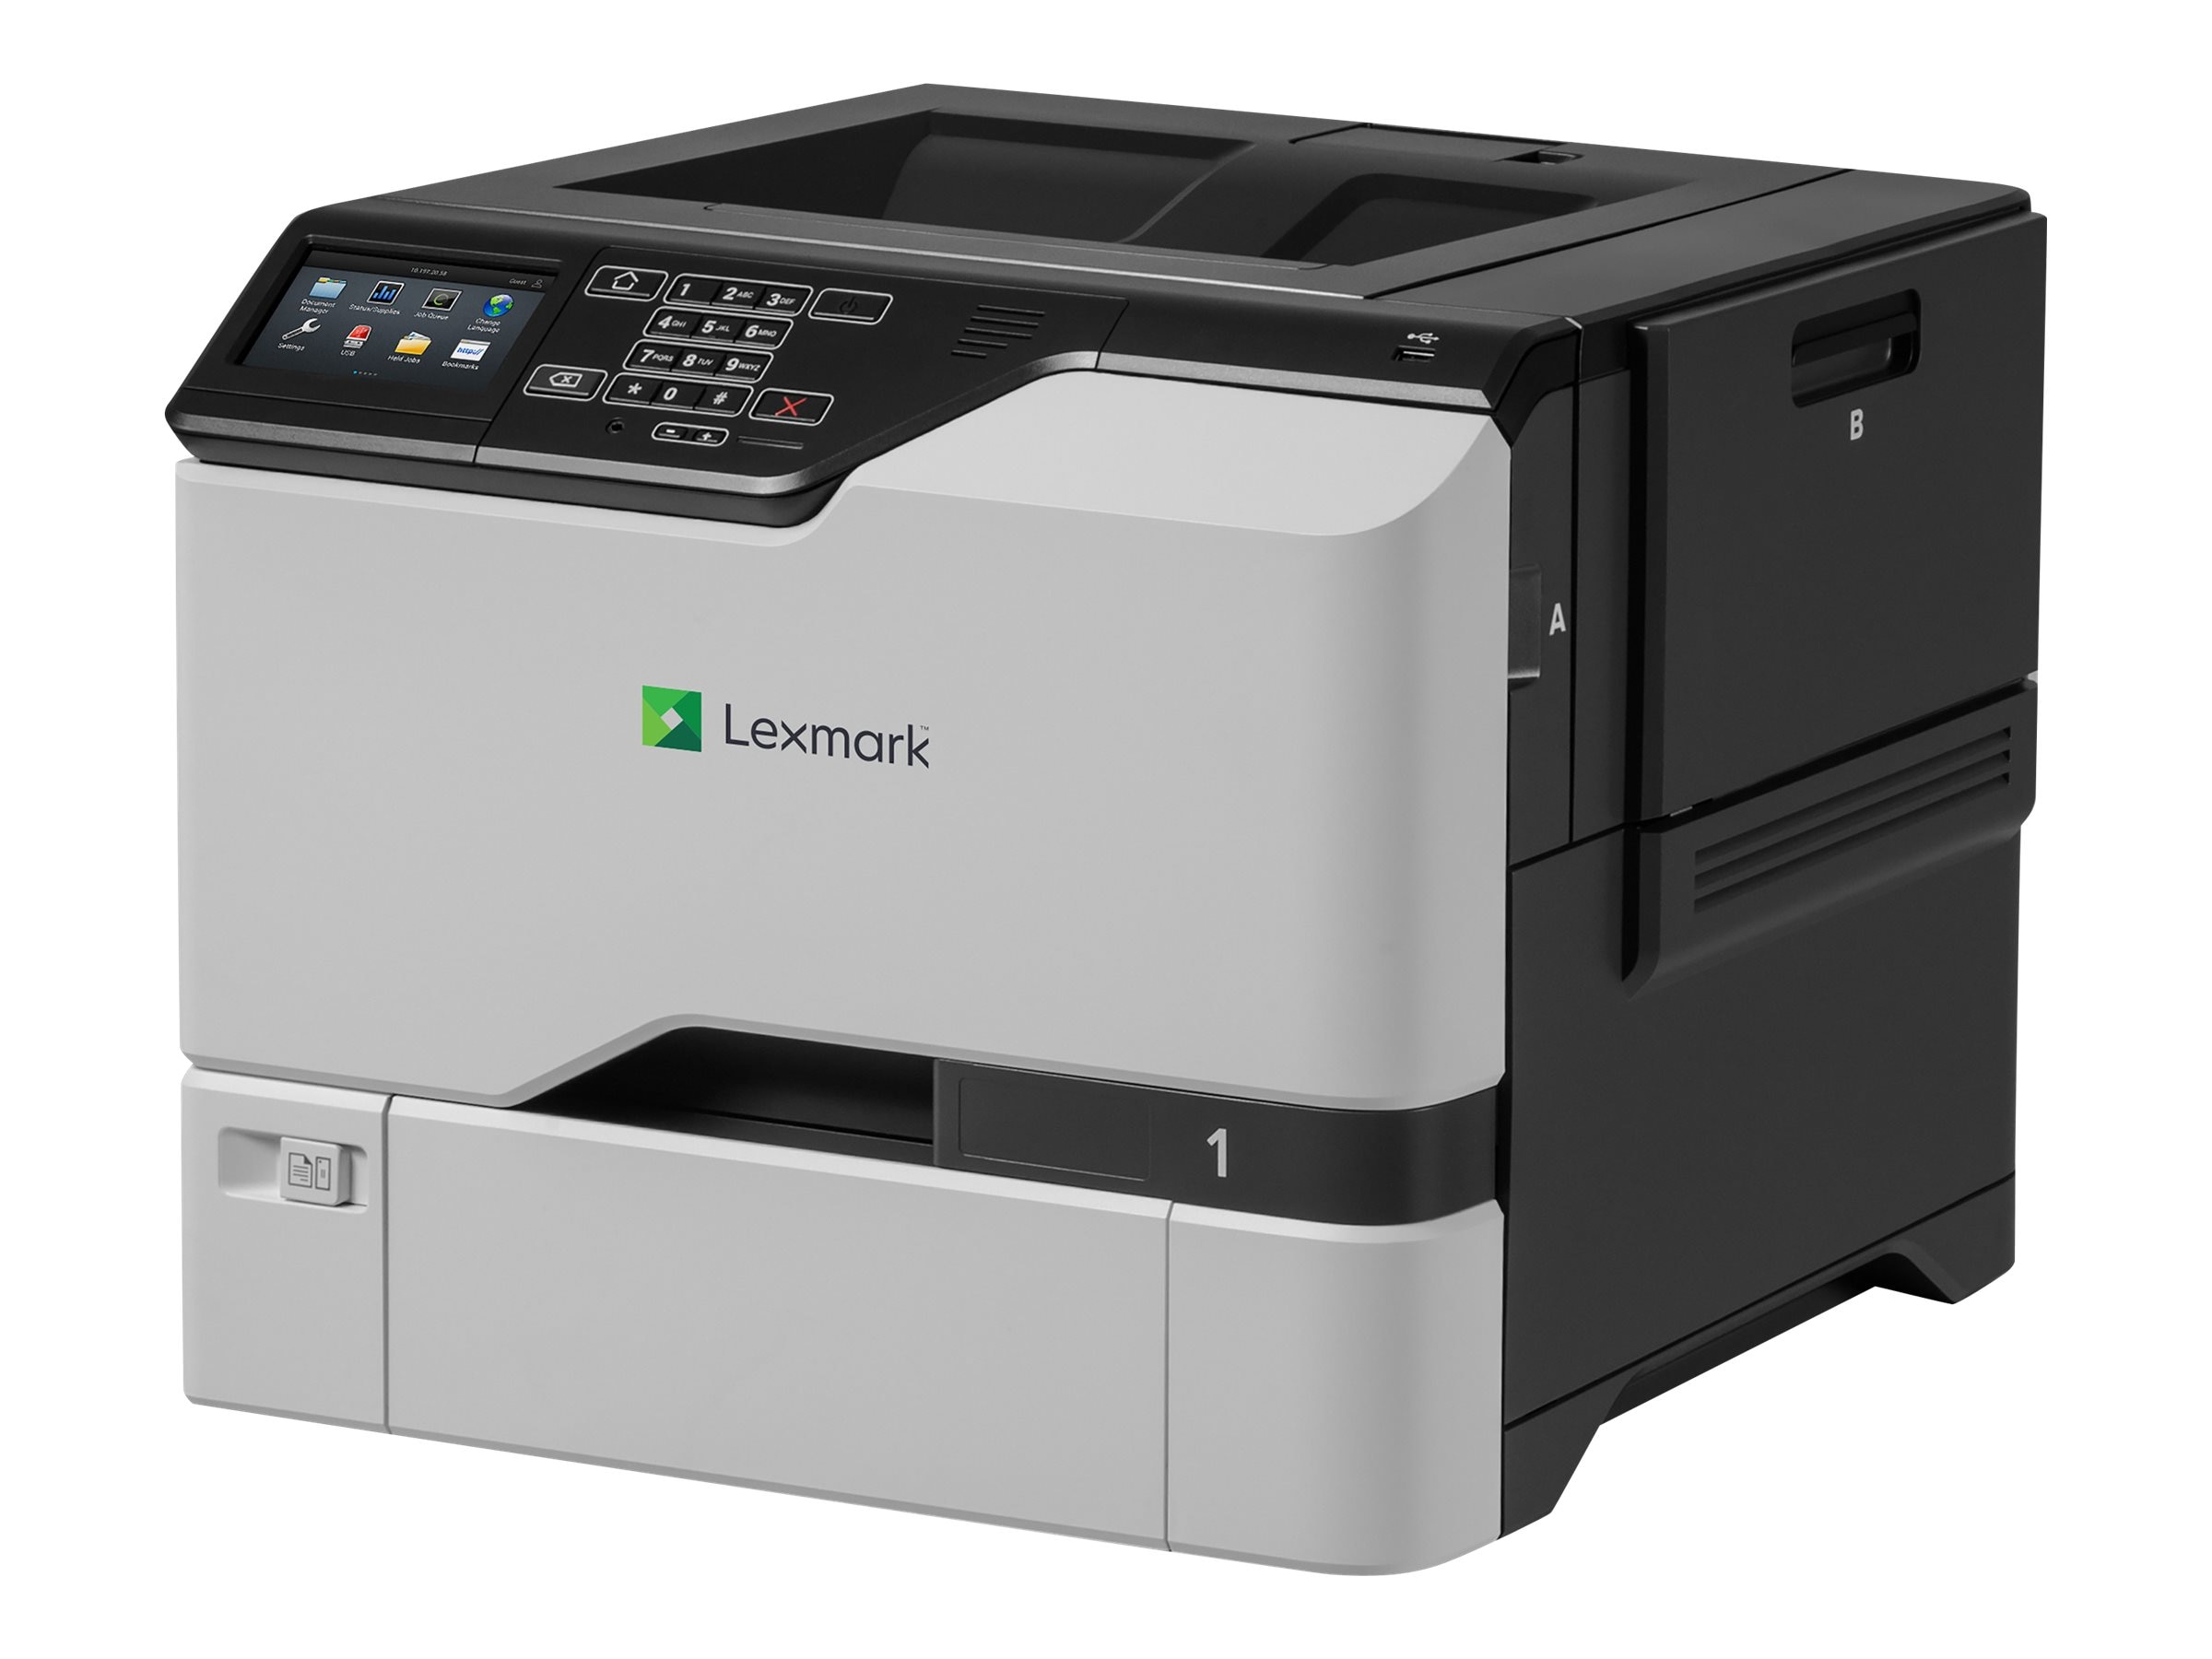 Lexmark CS720de Color Laser Printer - HV (TAA Compliant)